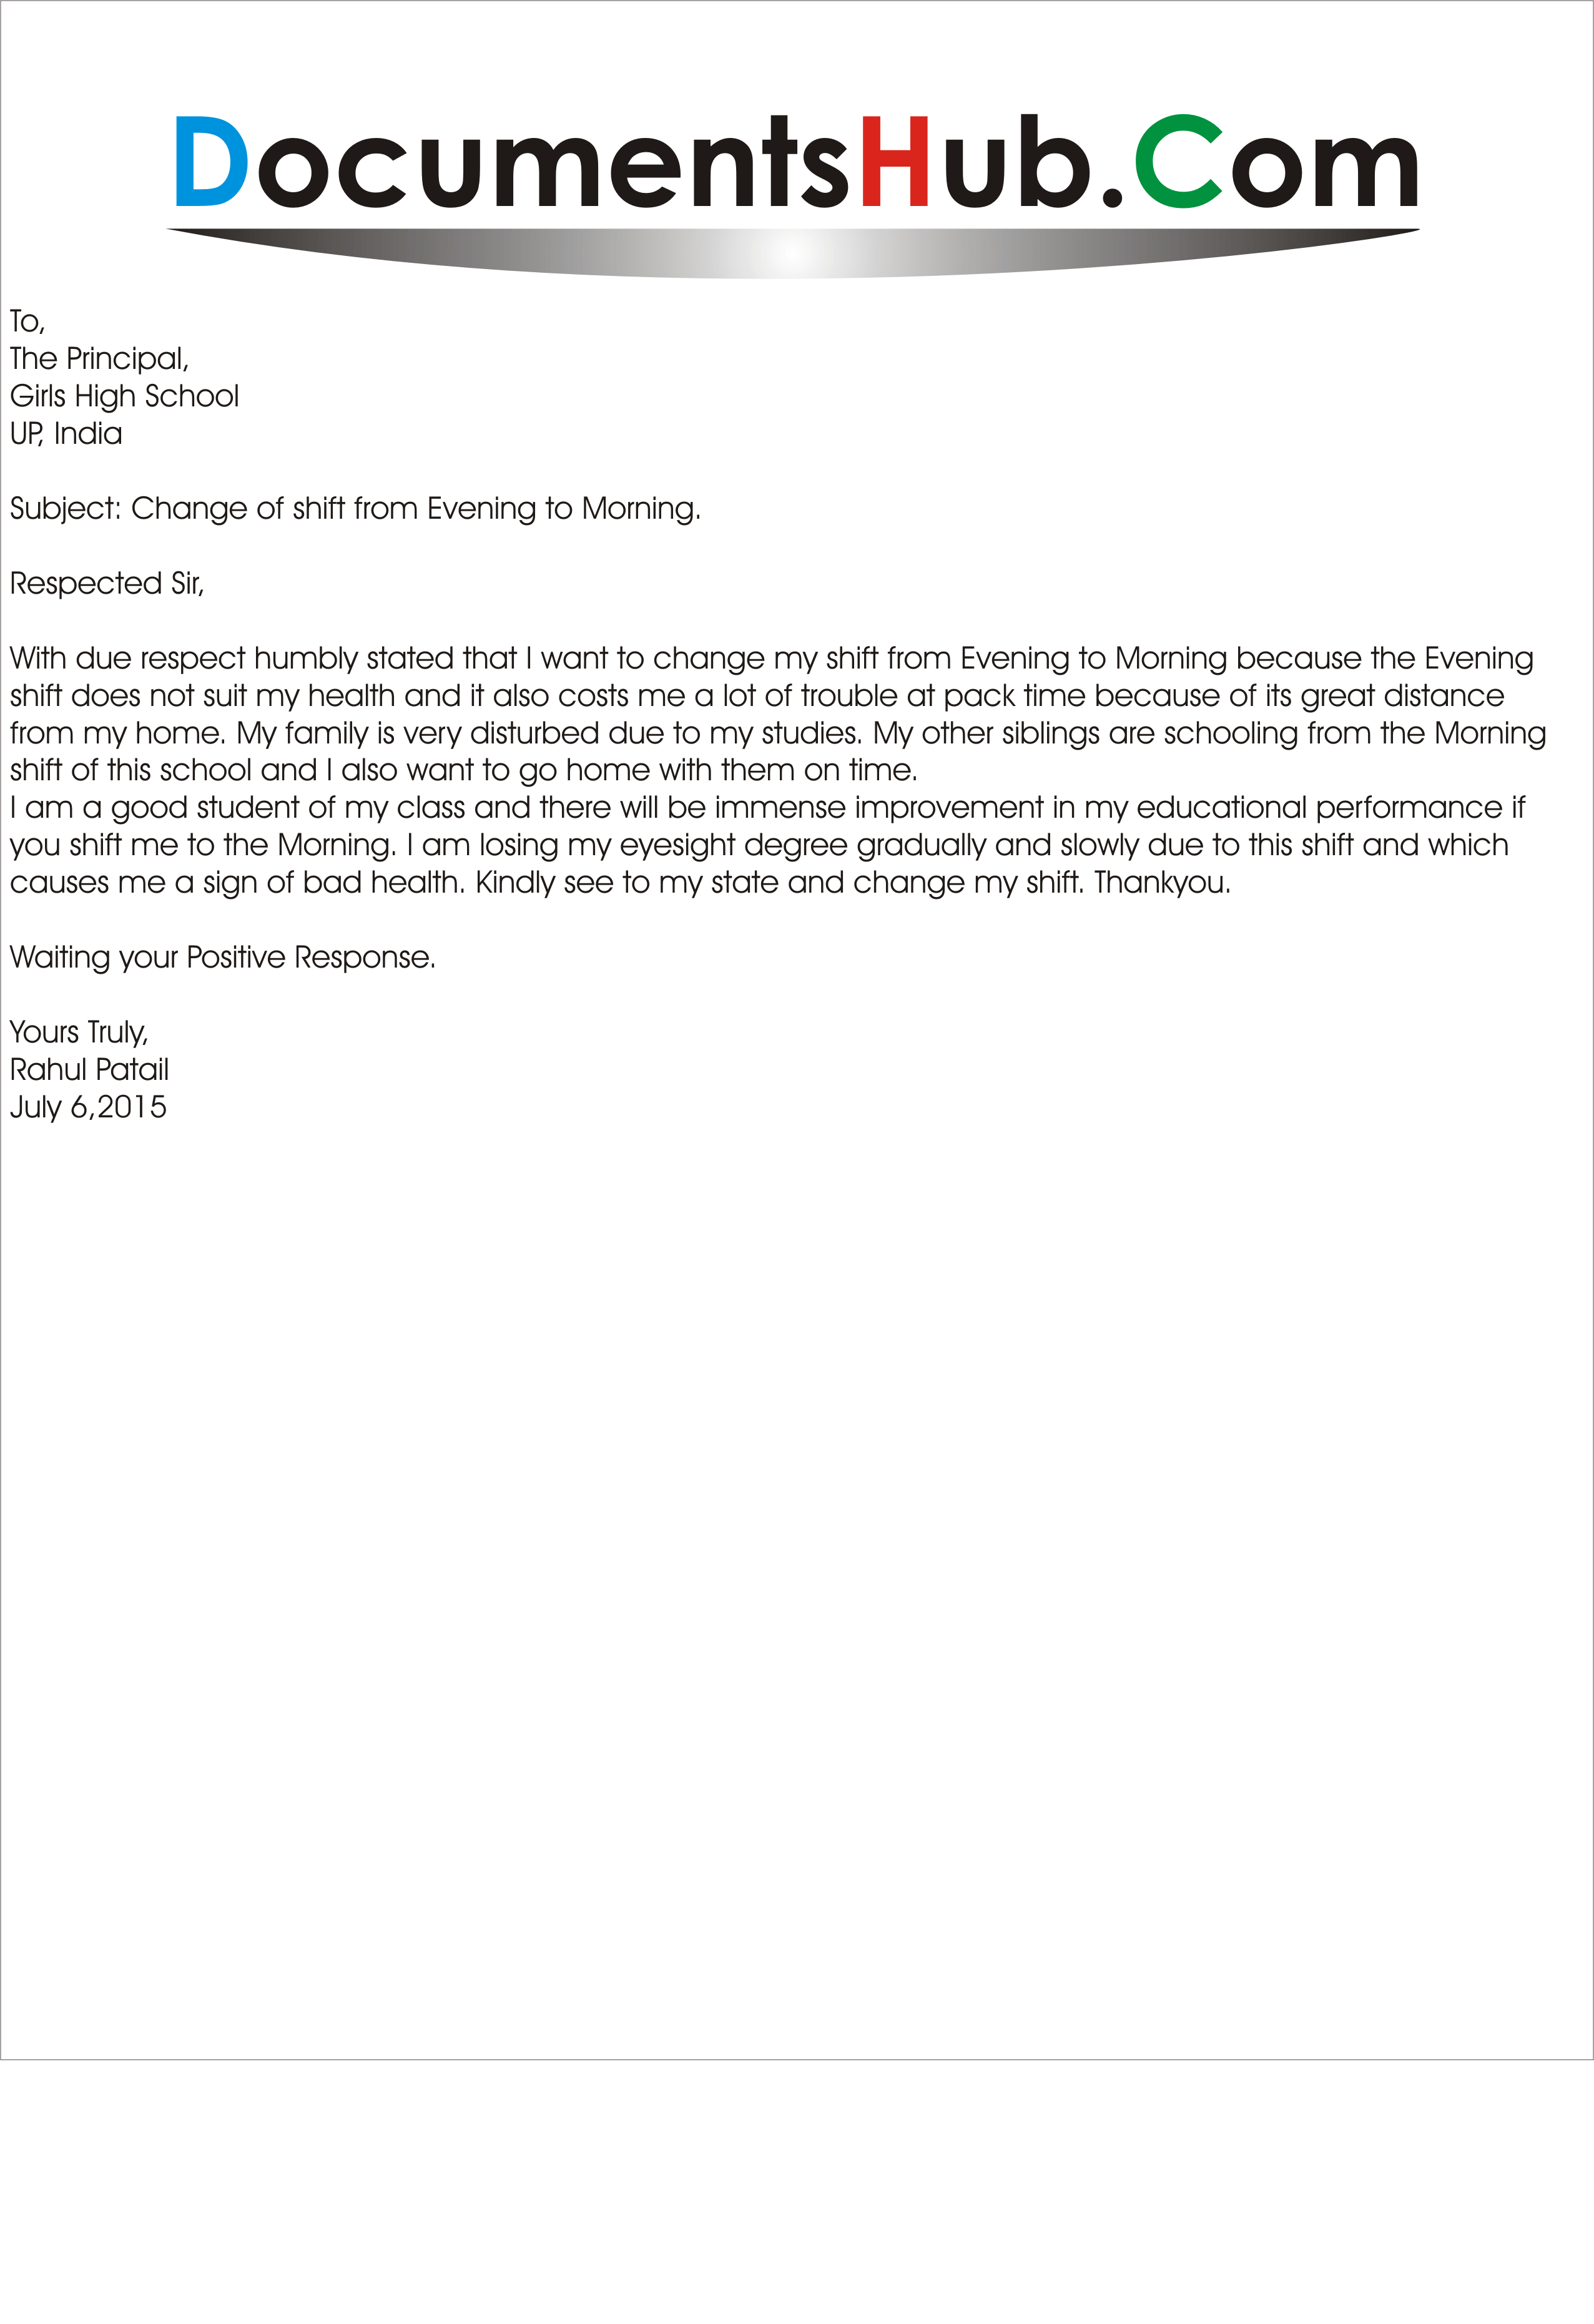 Shift Change Request Letter Scrumps